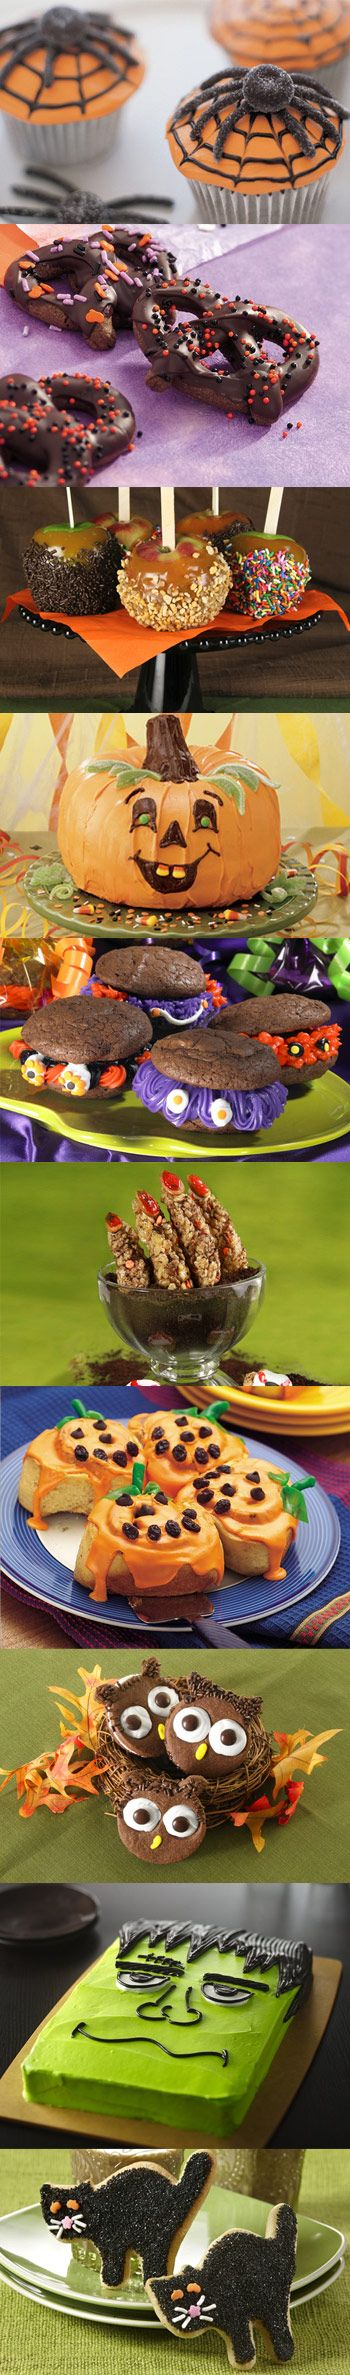 Halloween party treats!: Halloween Desserts, Halloween Party Treats, Halloween Fun, Fall Halloween, Sheet Cake, Halloween Foods, Halloween Treats, Halloween Recipes, Halloween Ideas